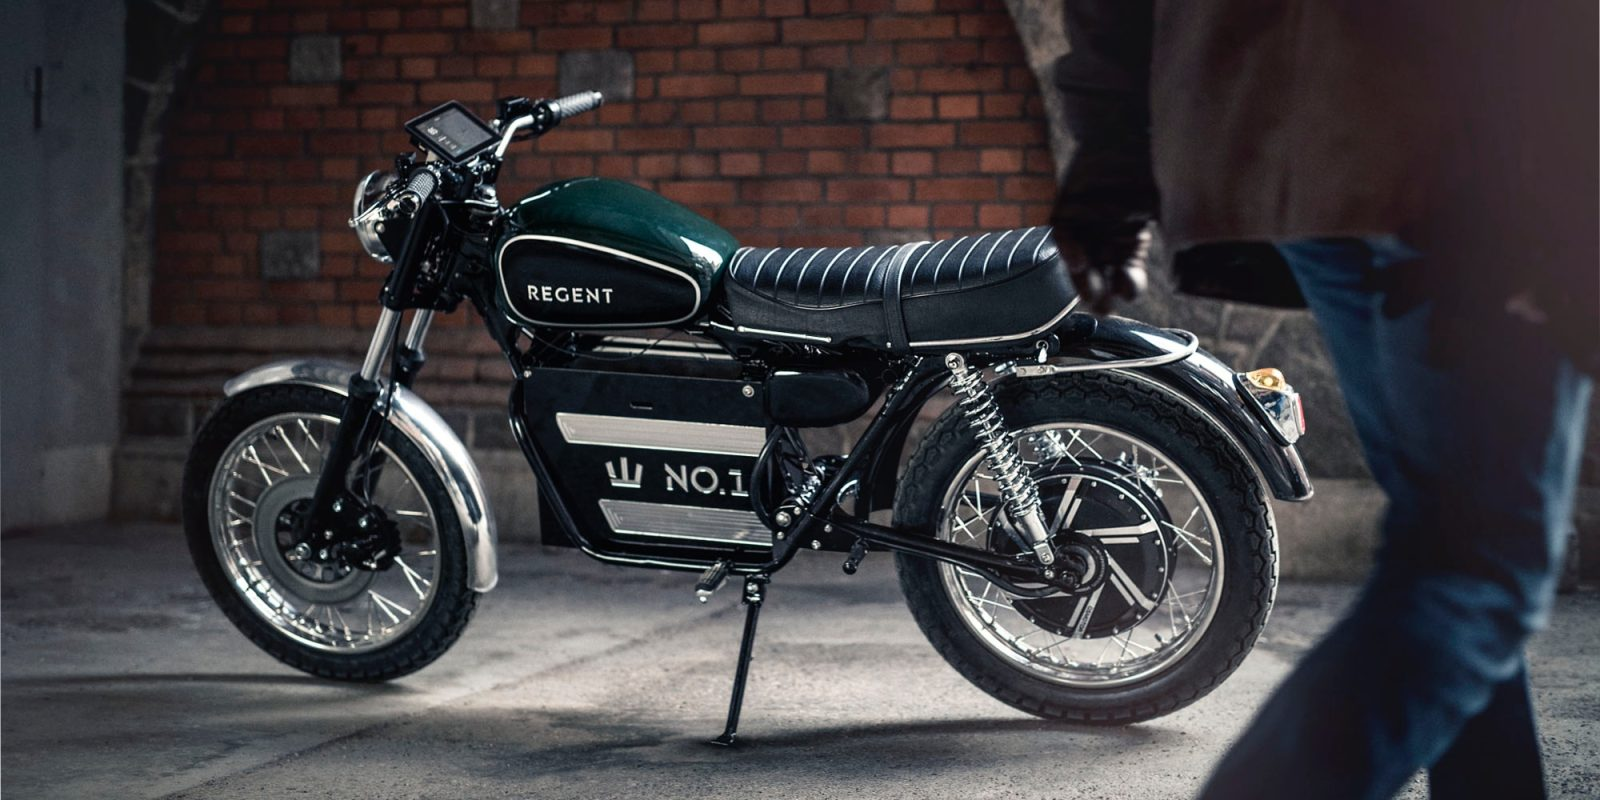 This beautifully retro electric motorcycle is headed to